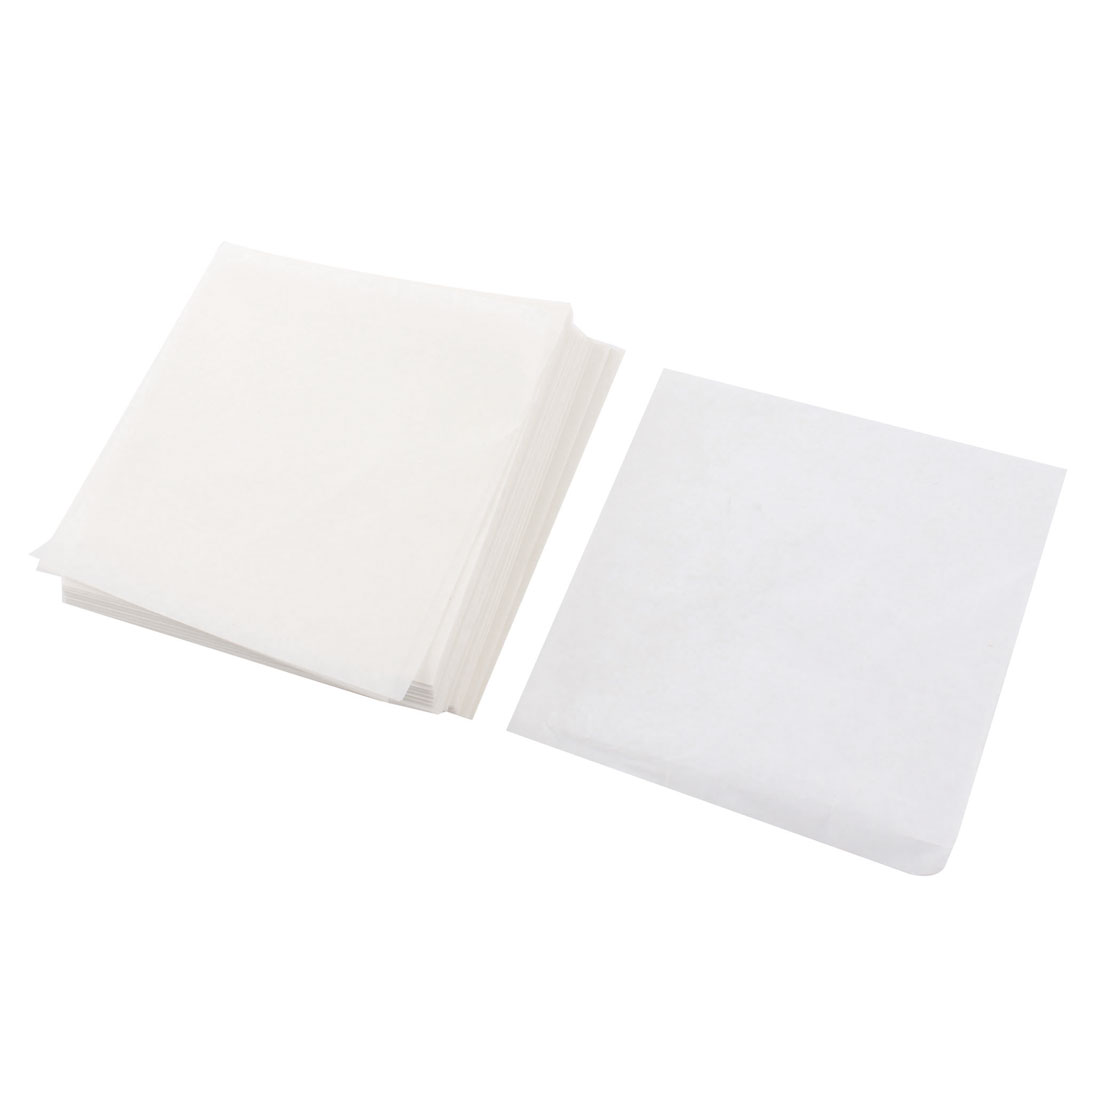 500pcs Laboratory Analytical Square Shaped Weighing Paper 100mmx100mm